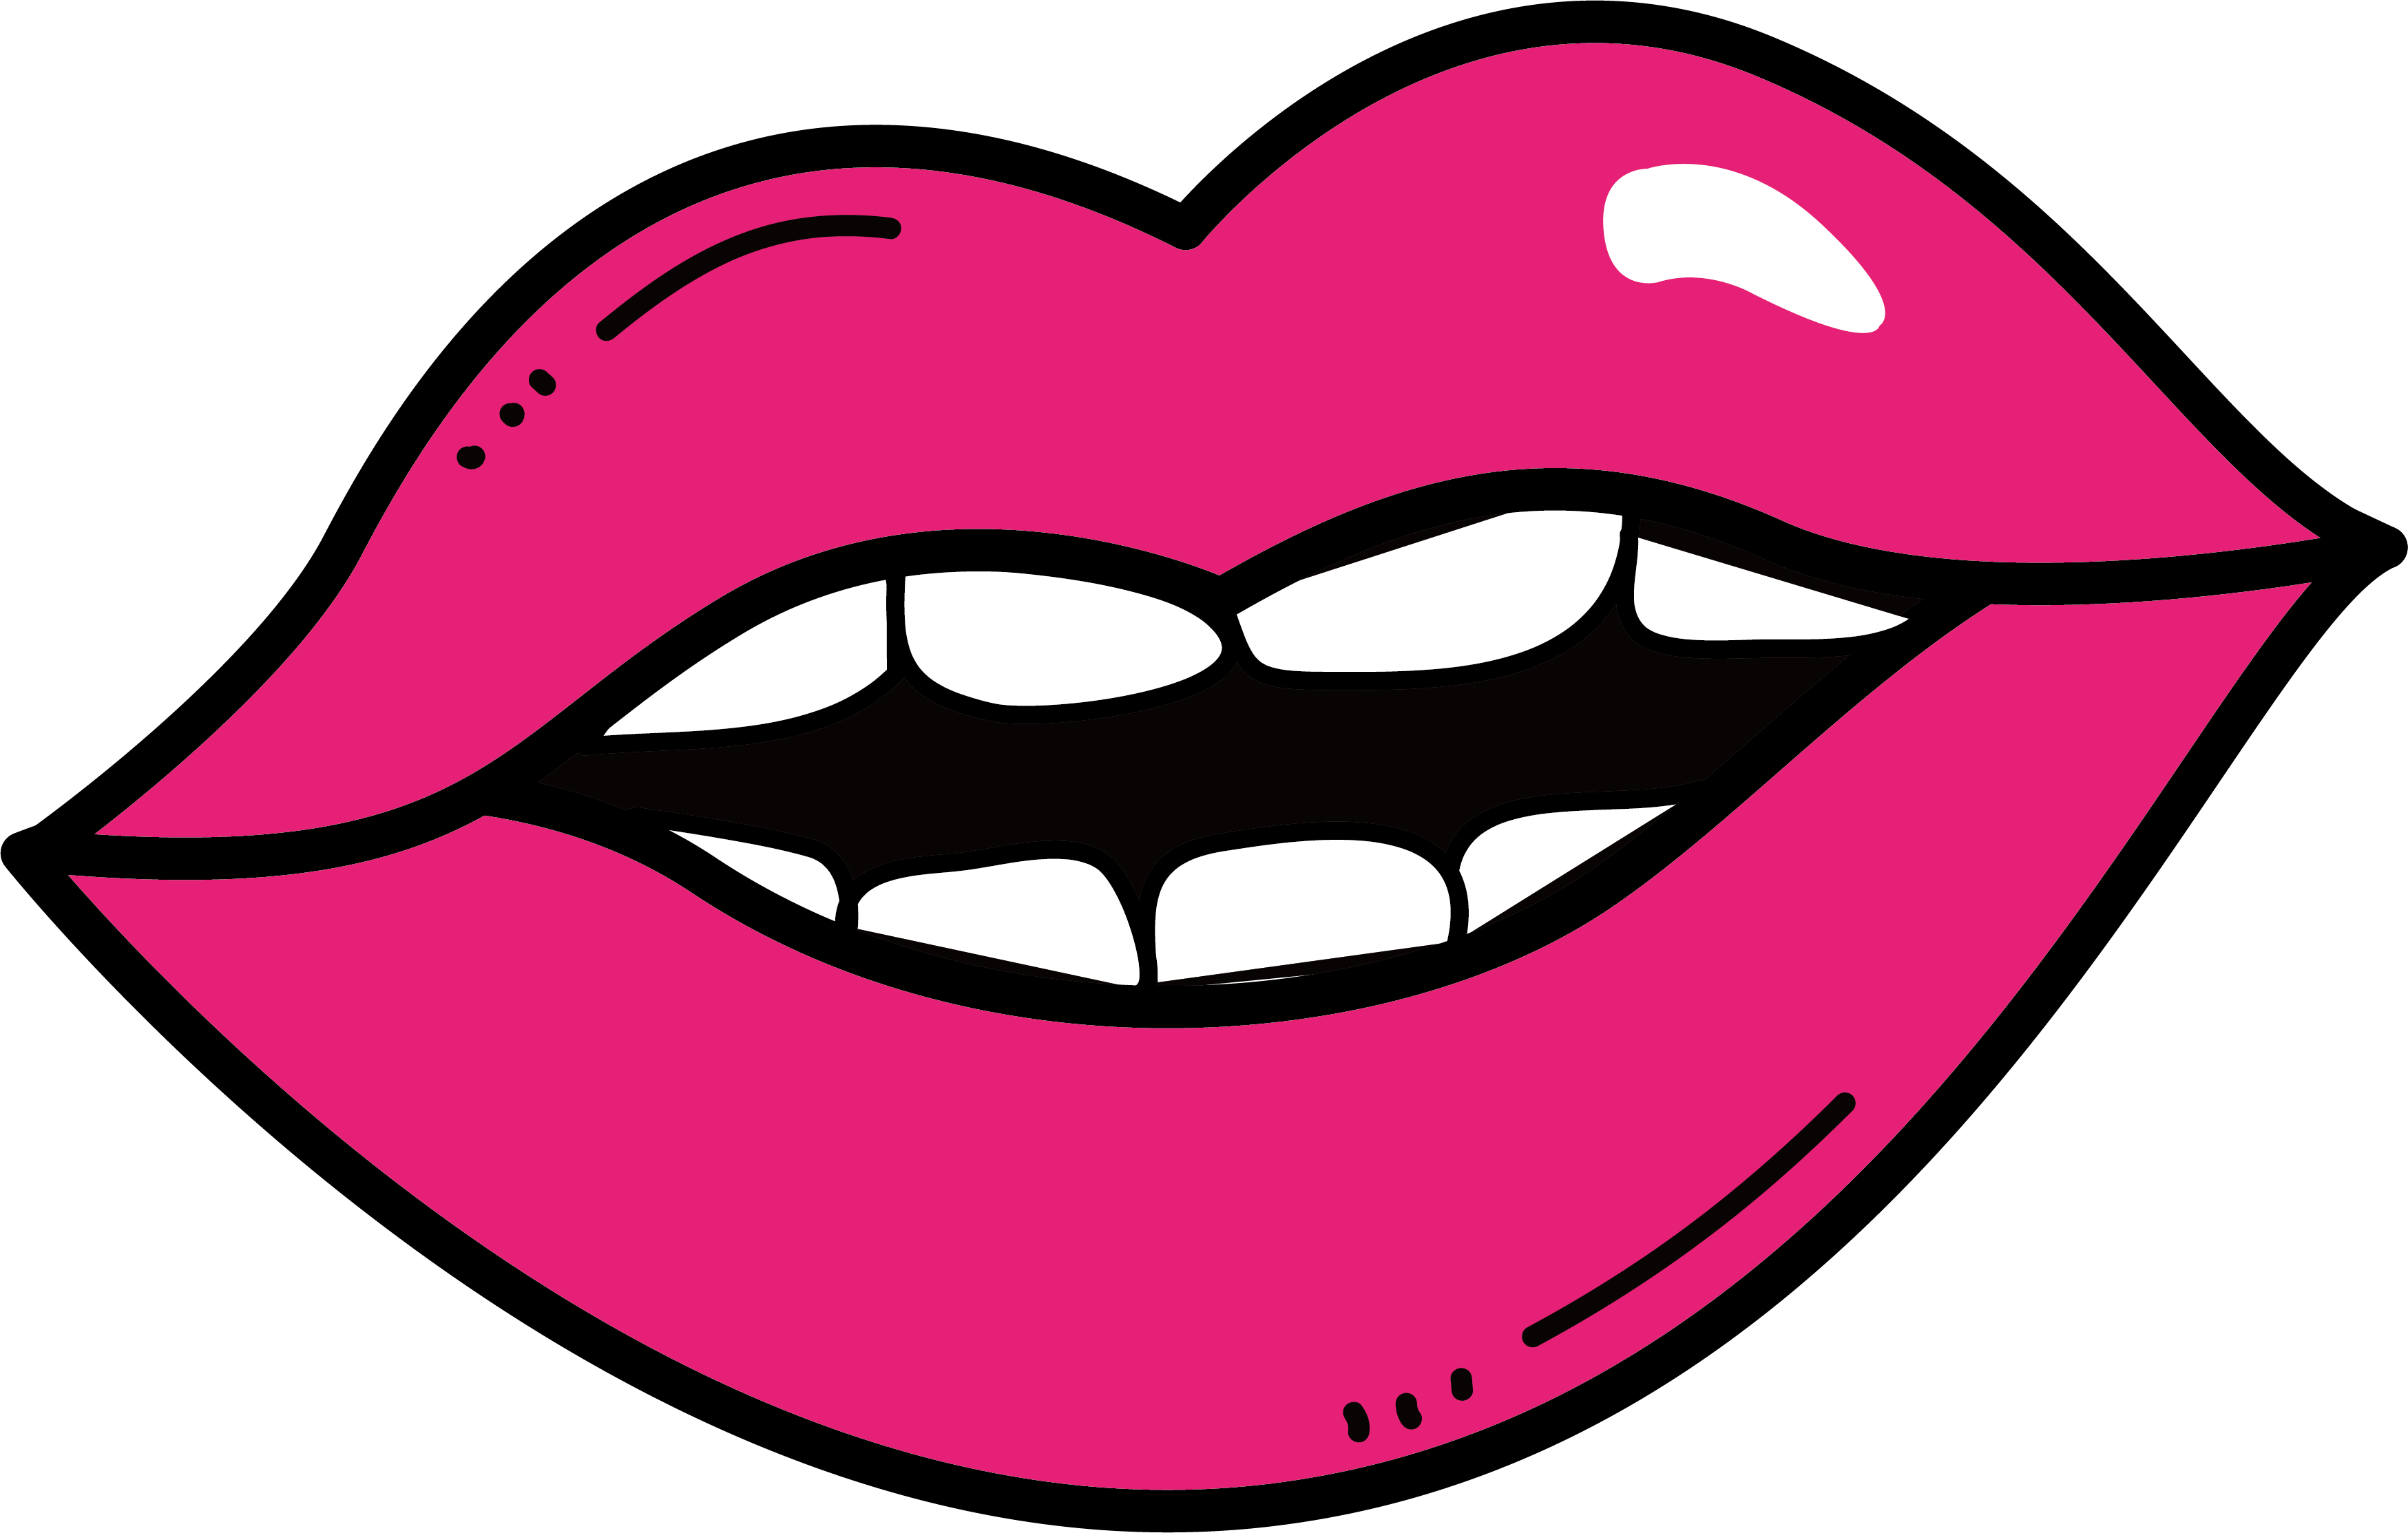 Lips drawing png. Lip clip art pink